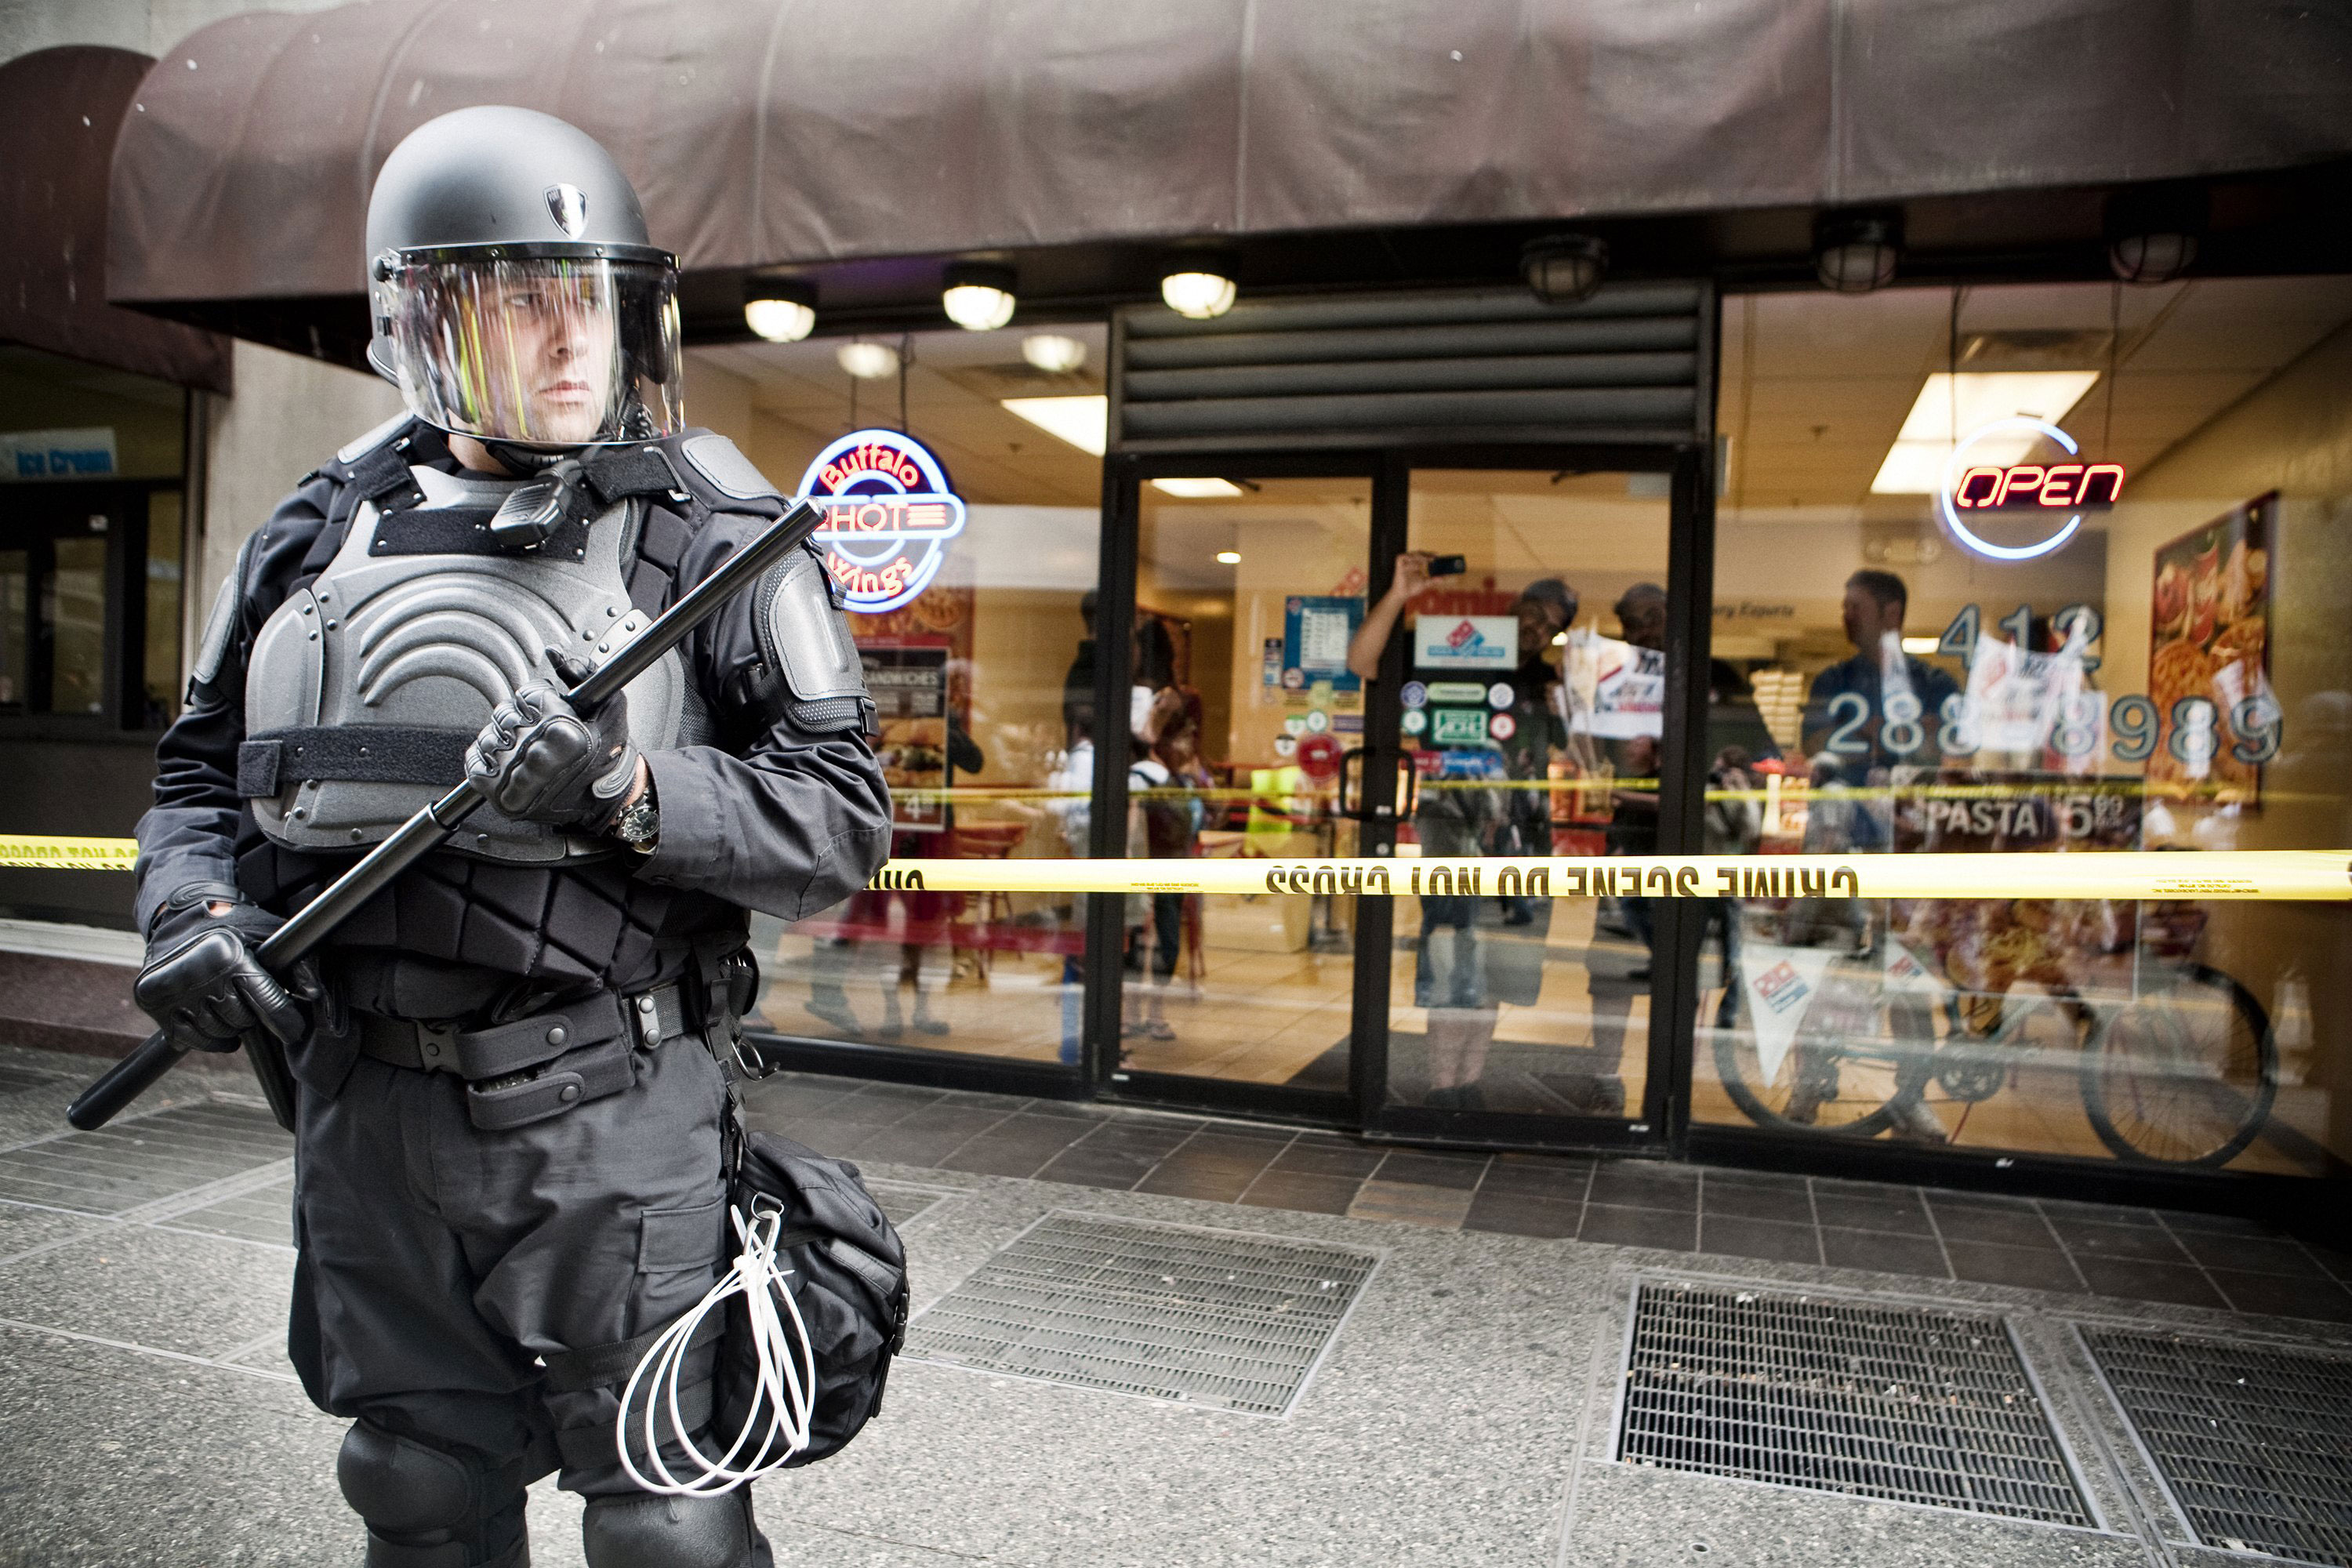 A police officer stands guard during the G20 protests in Pittsburgh, September, 2009.